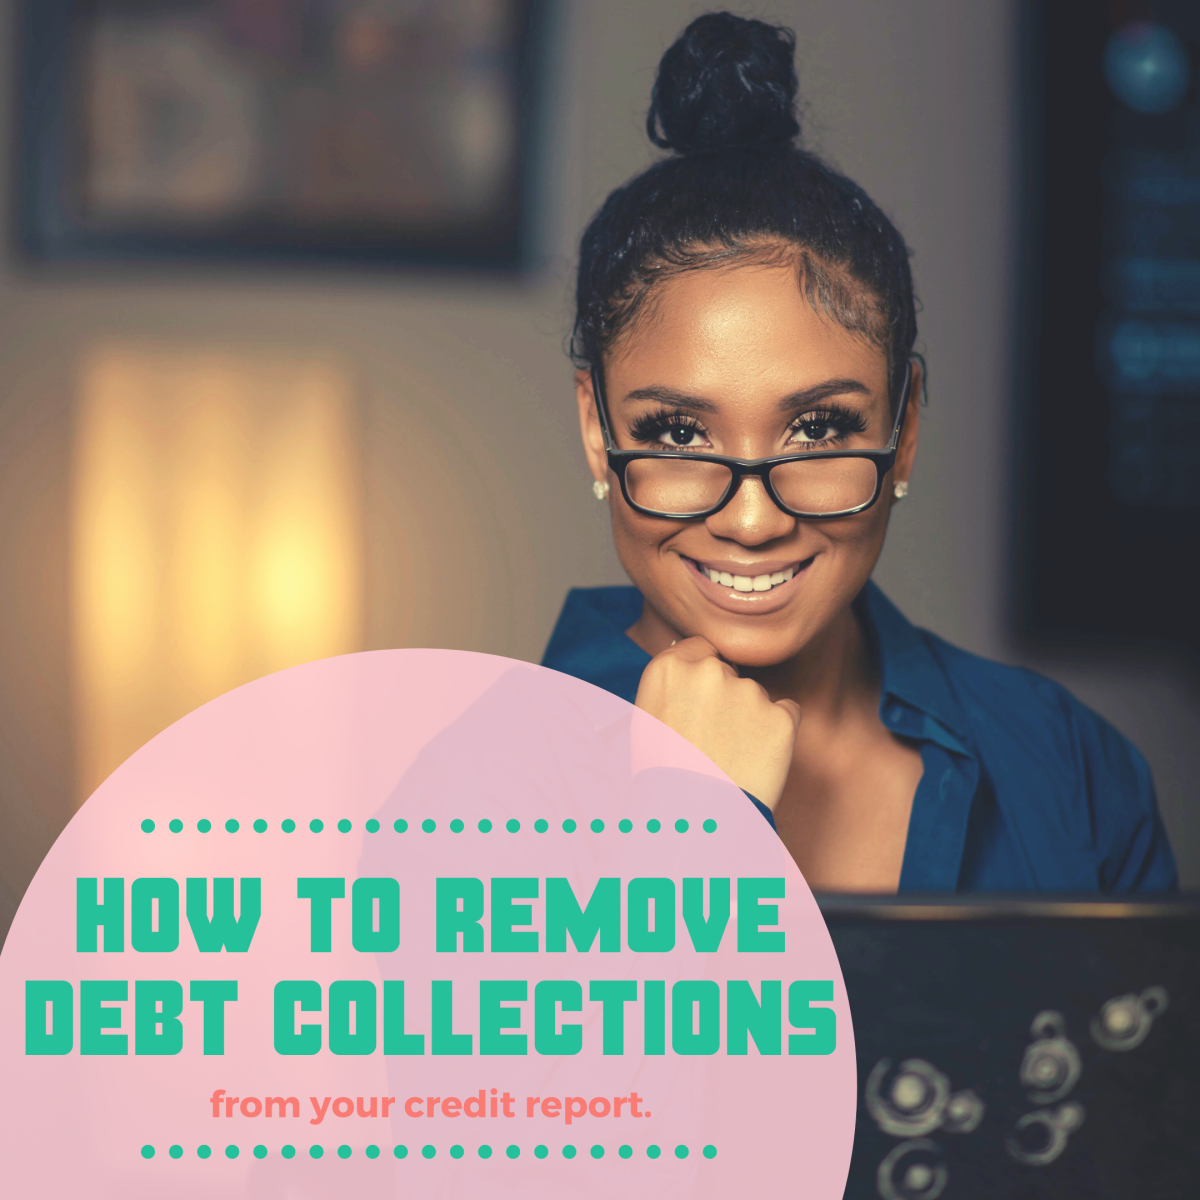 How to Remove Medical Debt Collections From Credit Reports